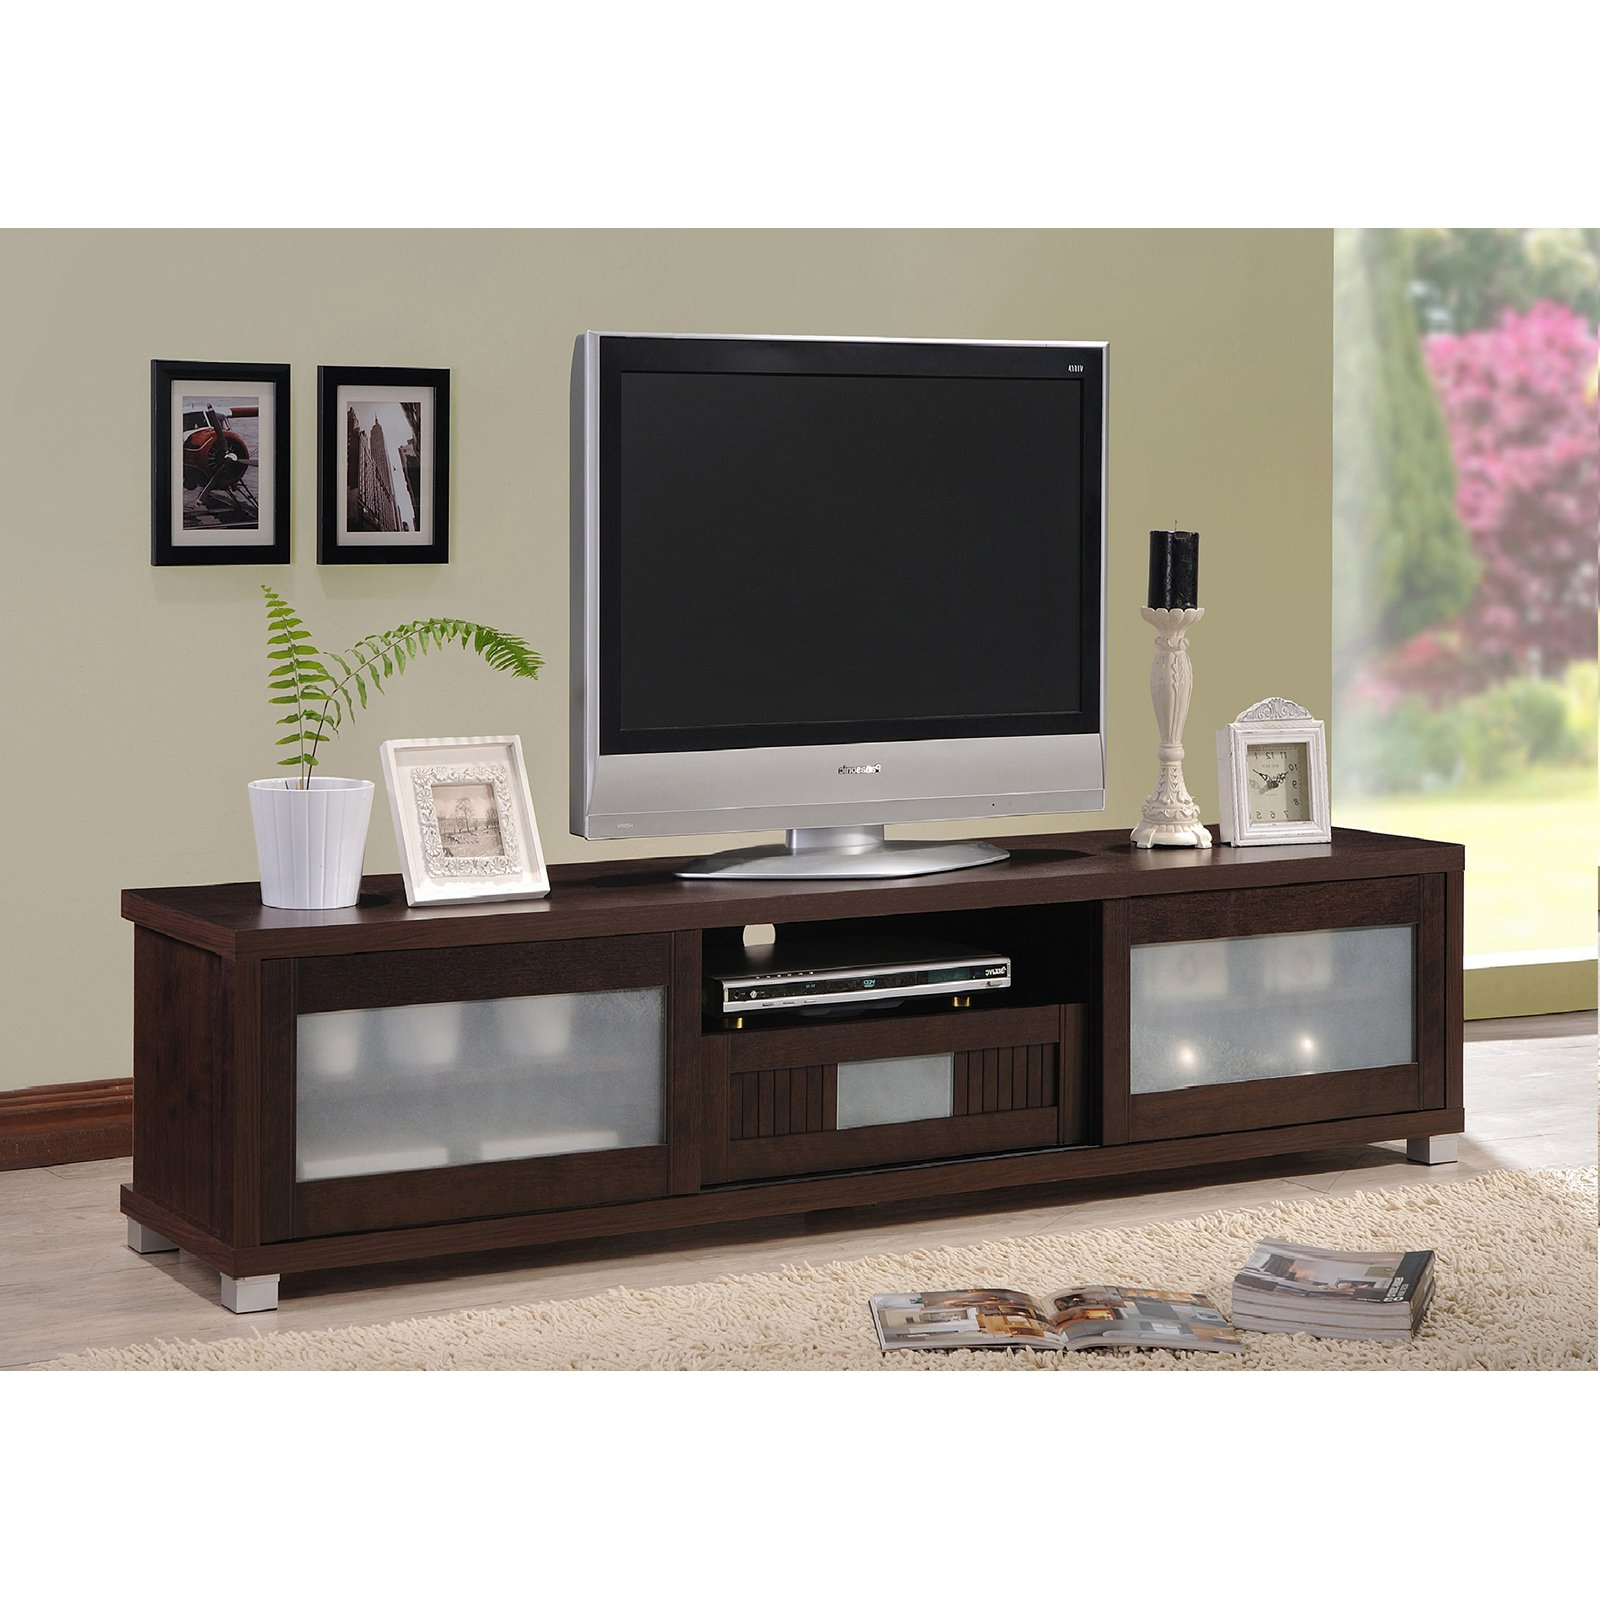 Amazon: Wholesale Interiors Baxton Studio Beasley Tv Cabinet With Regarding Dixon White 58 Inch Tv Stands (View 7 of 20)